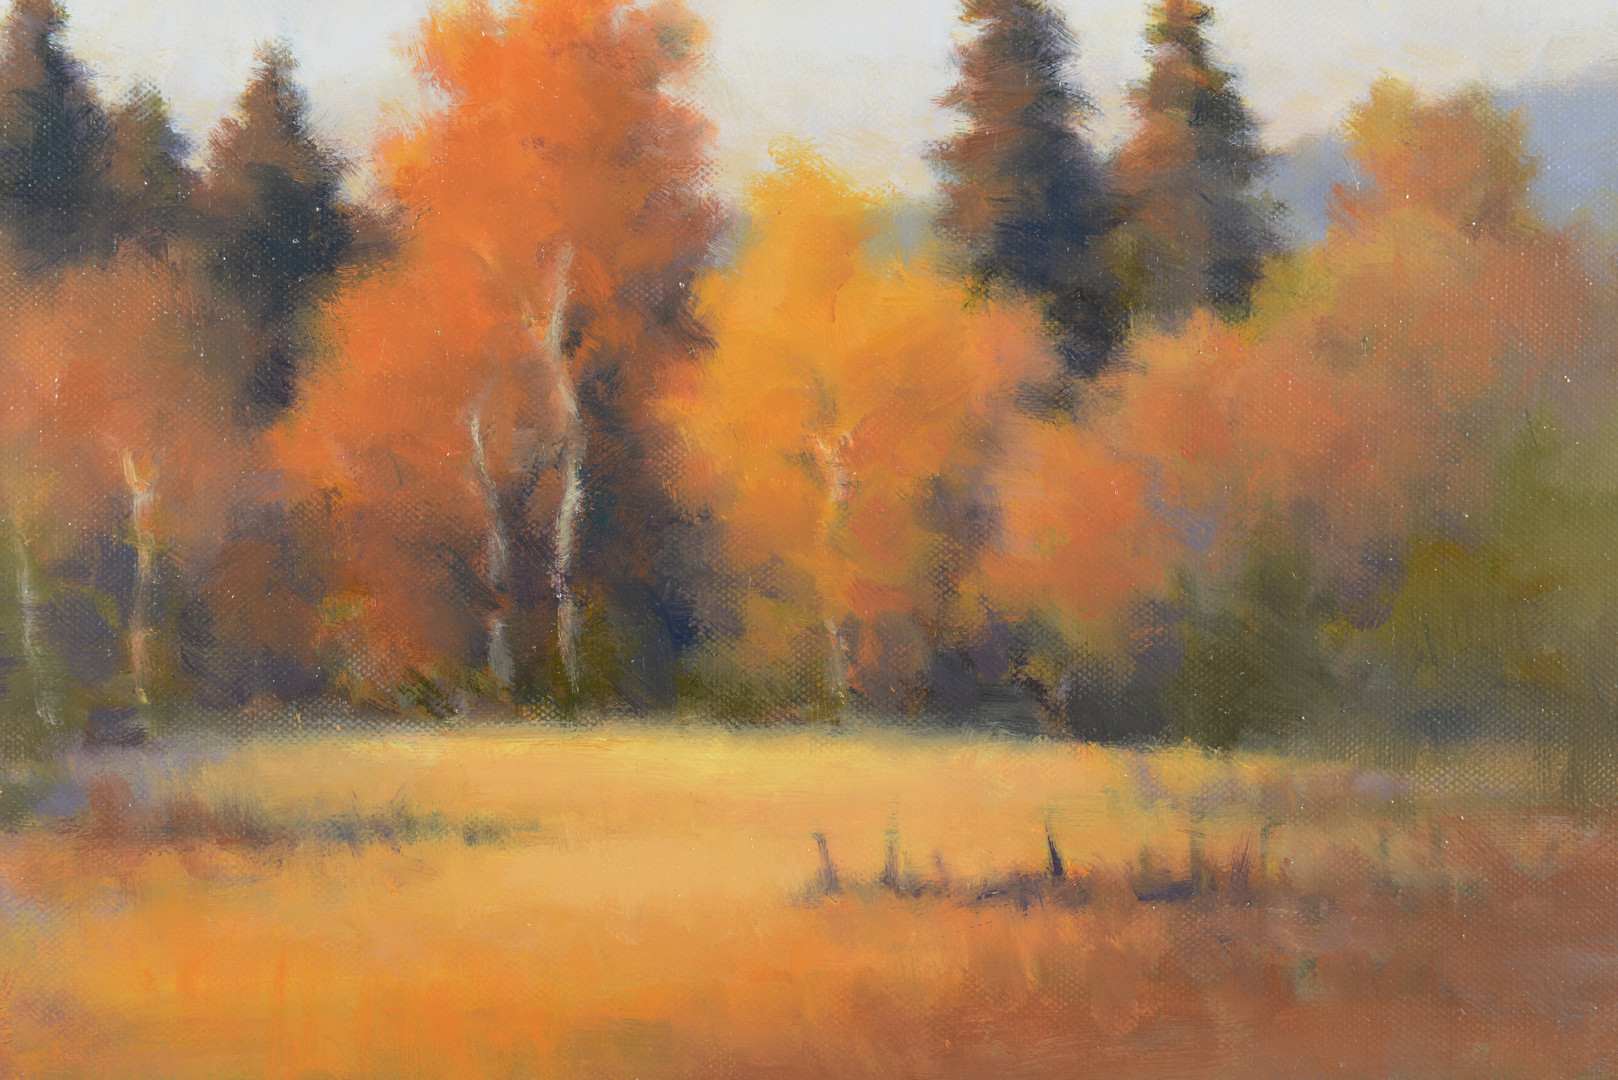 Lot 435: Autumn Glow by David Marty